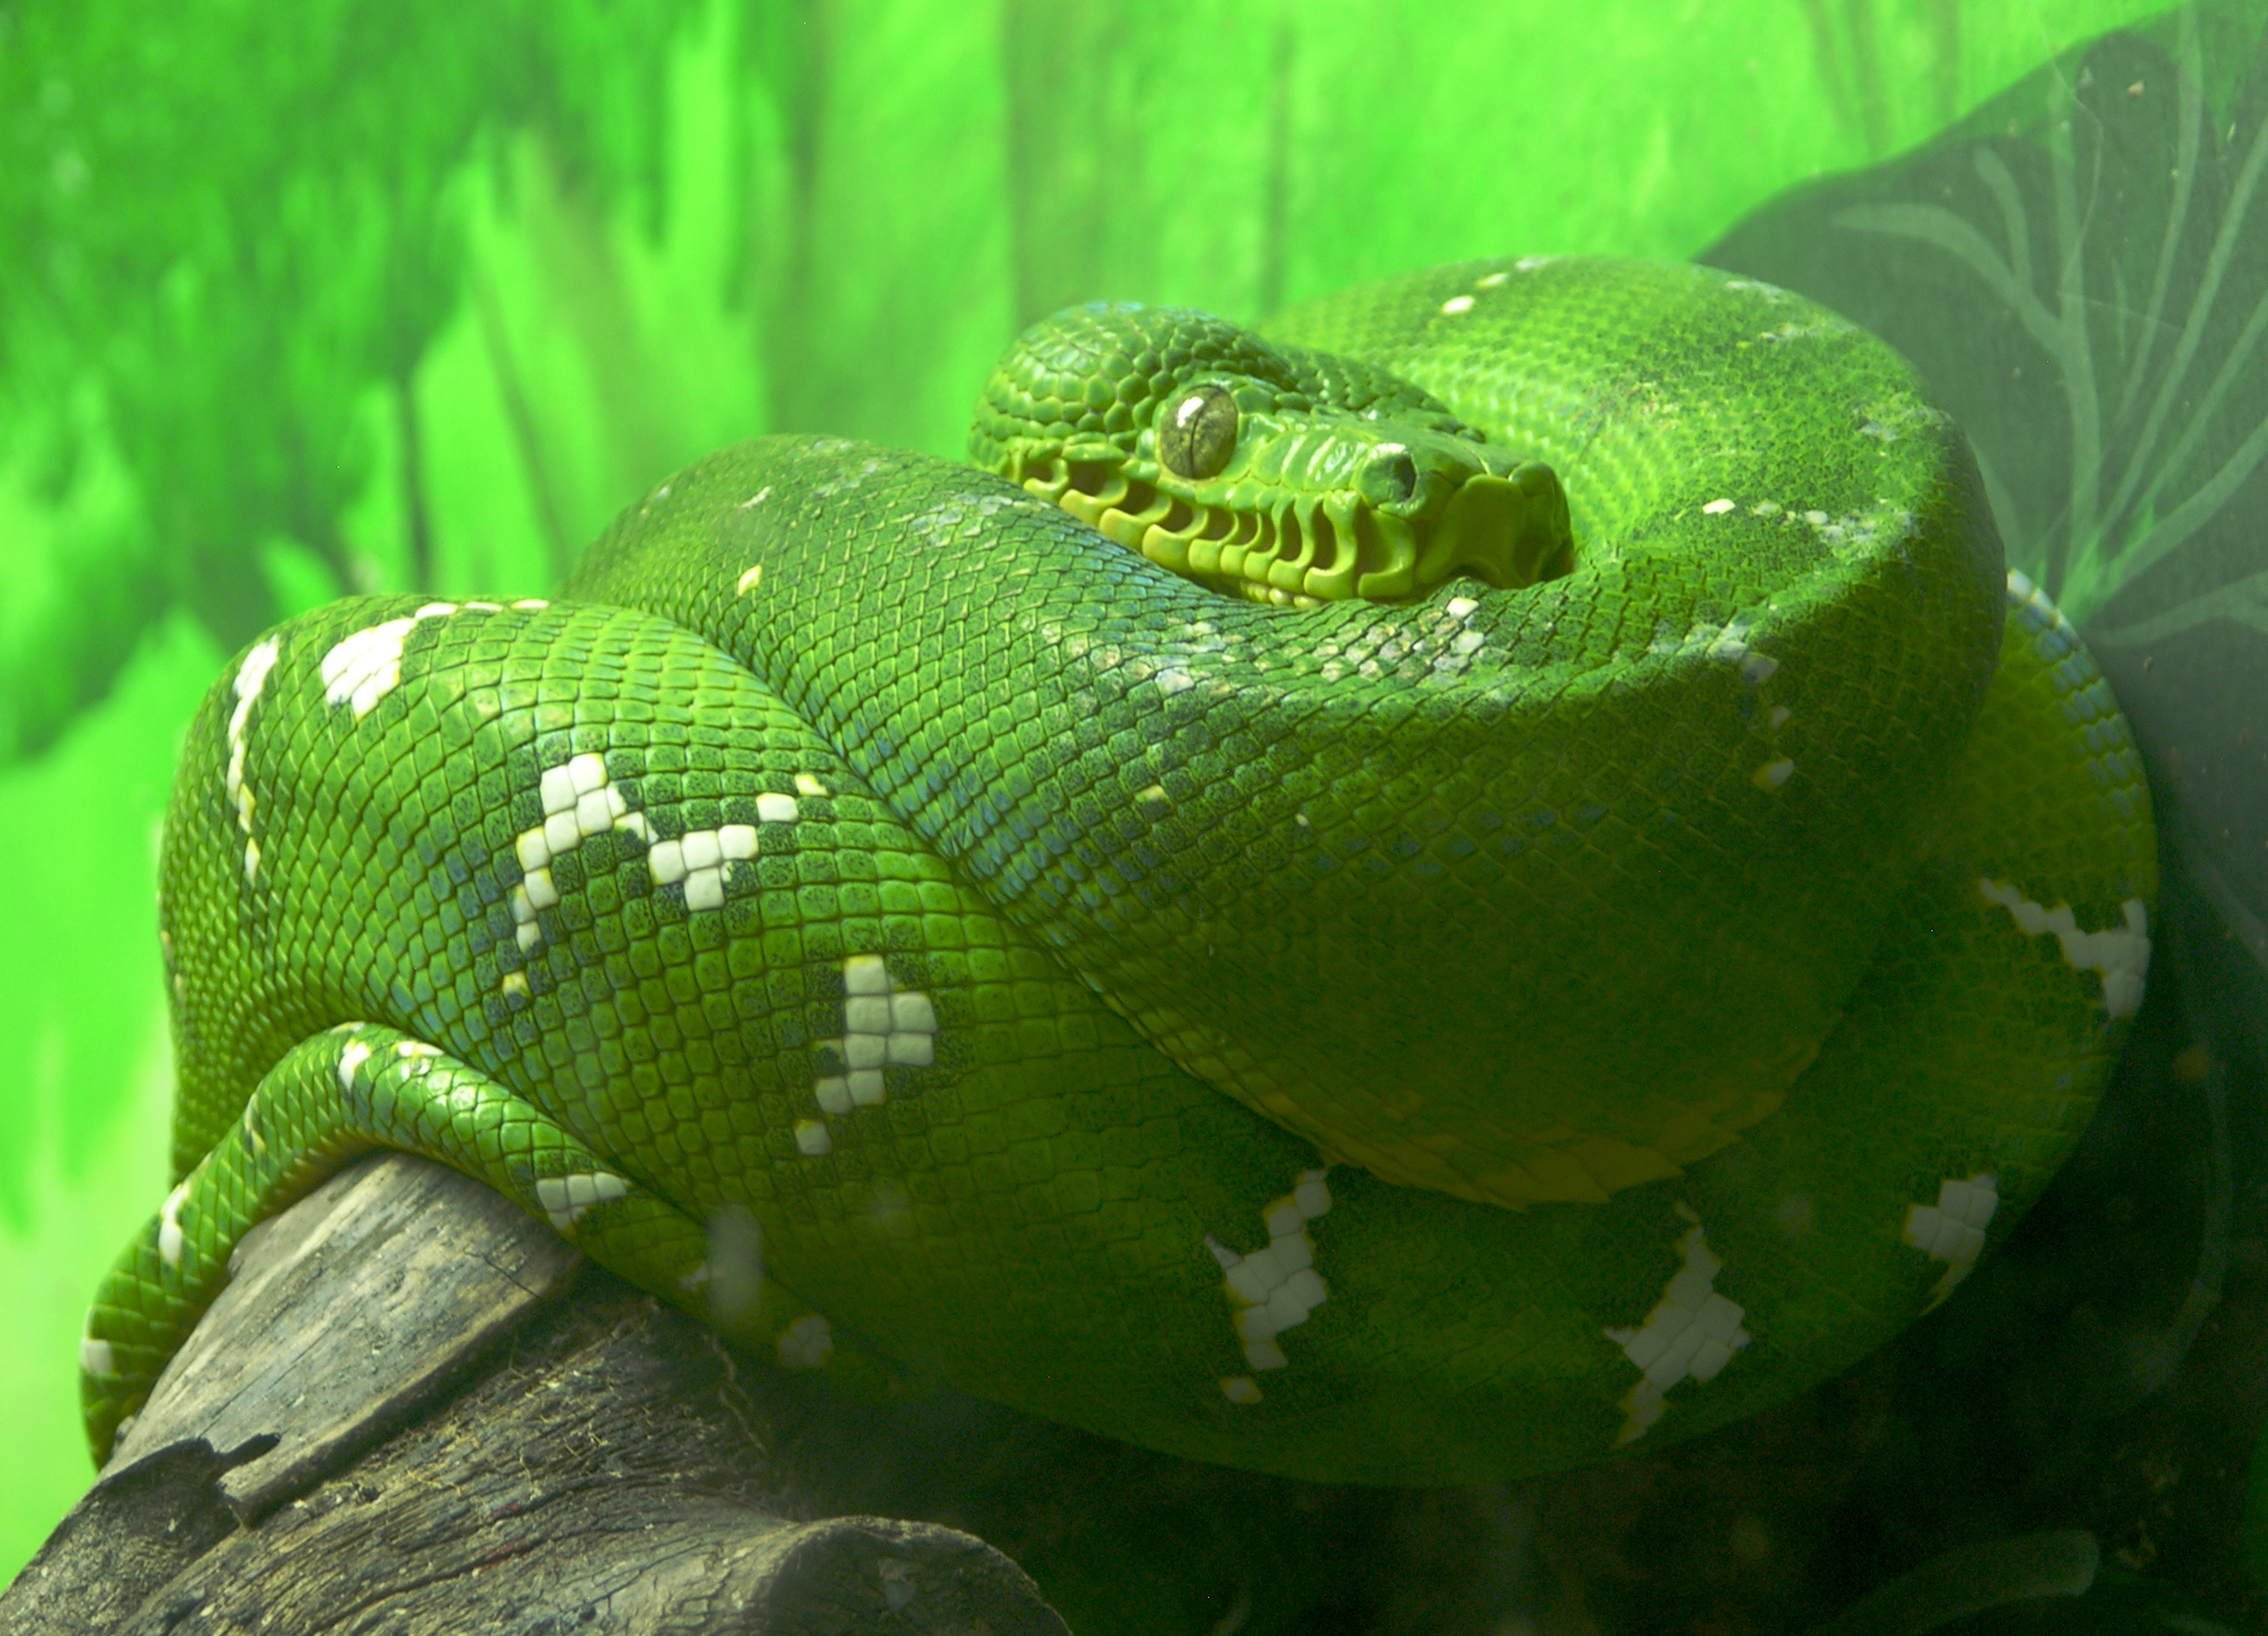 http://upload.wikimedia.org/wikipedia/commons/2/22/Emerald_Tree_Boa_Facing_Forward_2646px.jpg